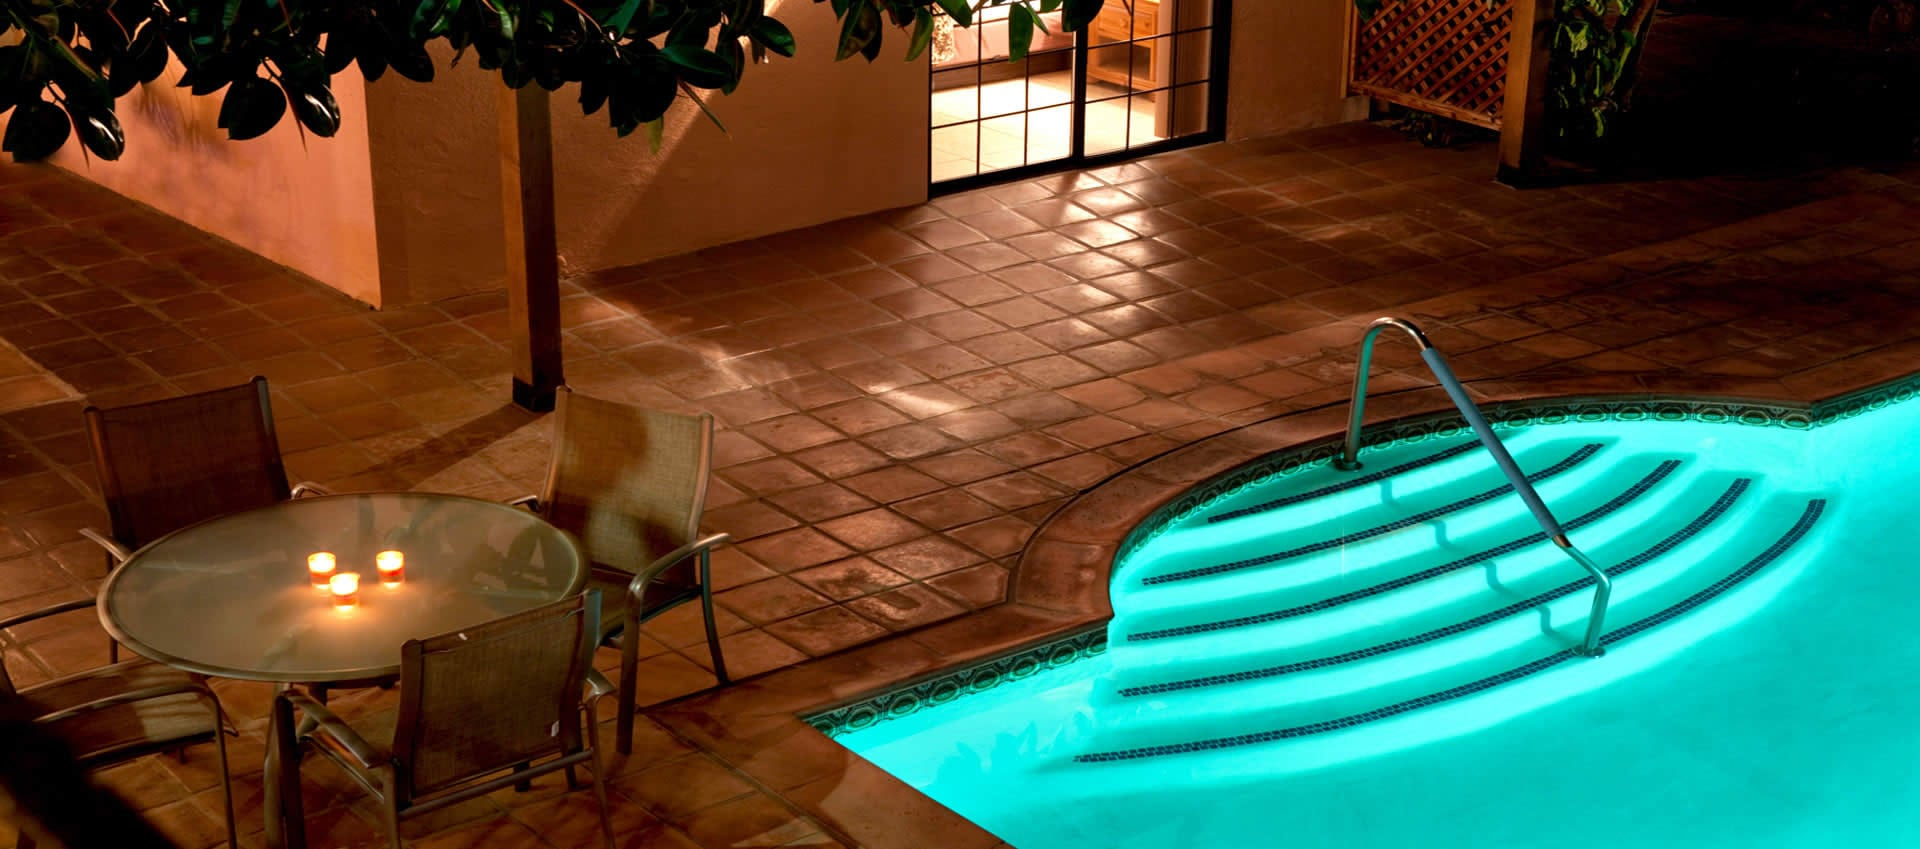 Hotel California night lit patio and pool